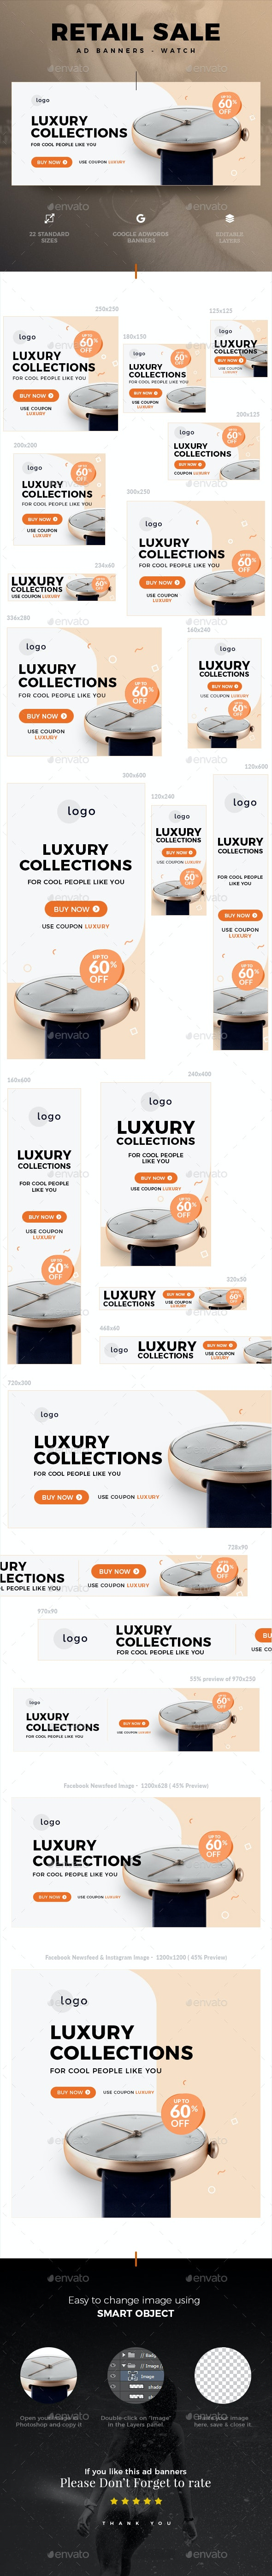 Retail Sale Web Ad Banners - Watch - Banners & Ads Web Elements